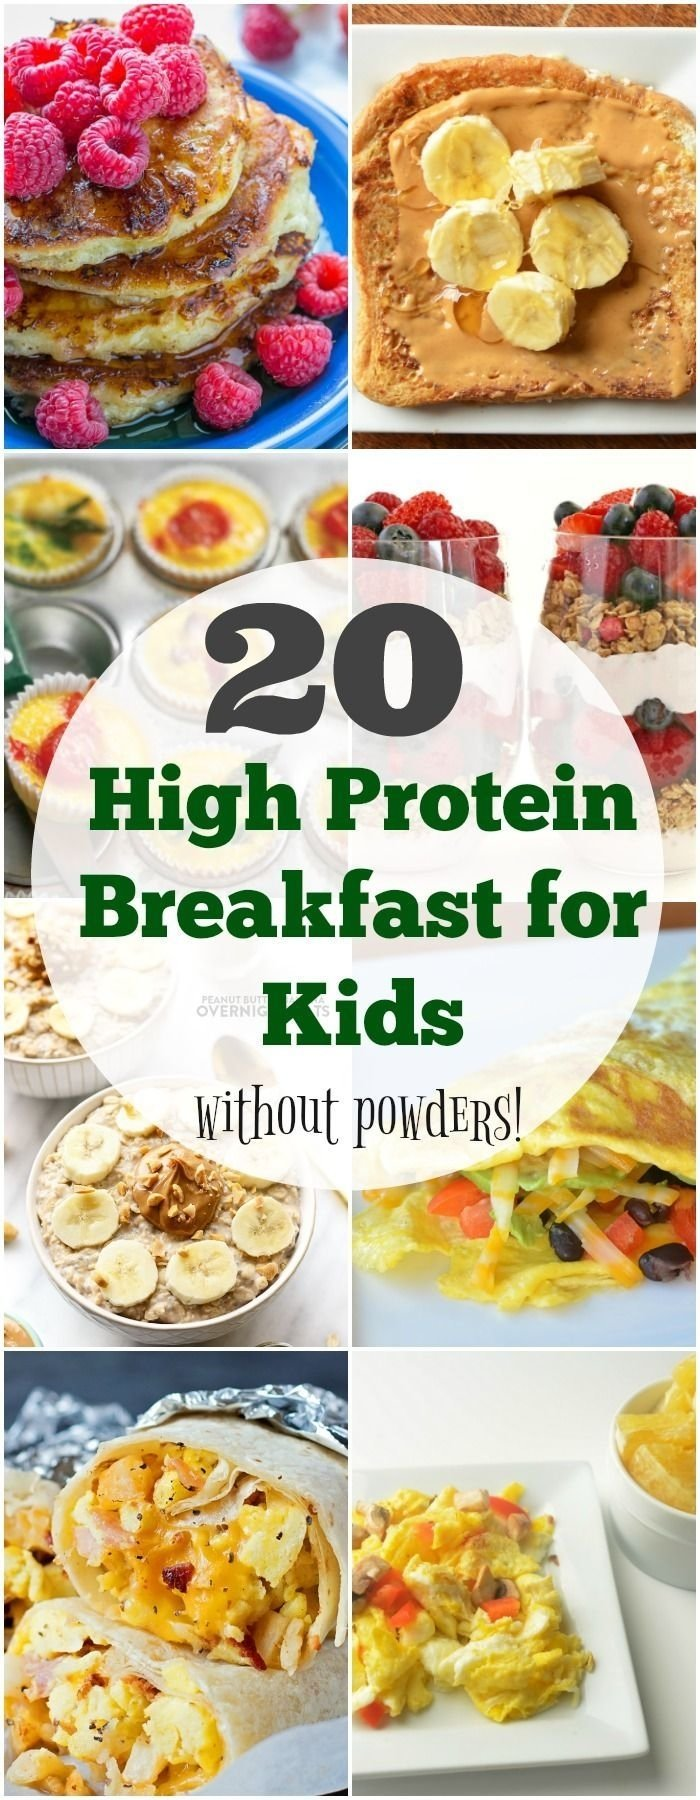 10 Fabulous 1 Year Old Meal Ideas 540 best healthy kids images on pinterest candy bars exercises 1 2021